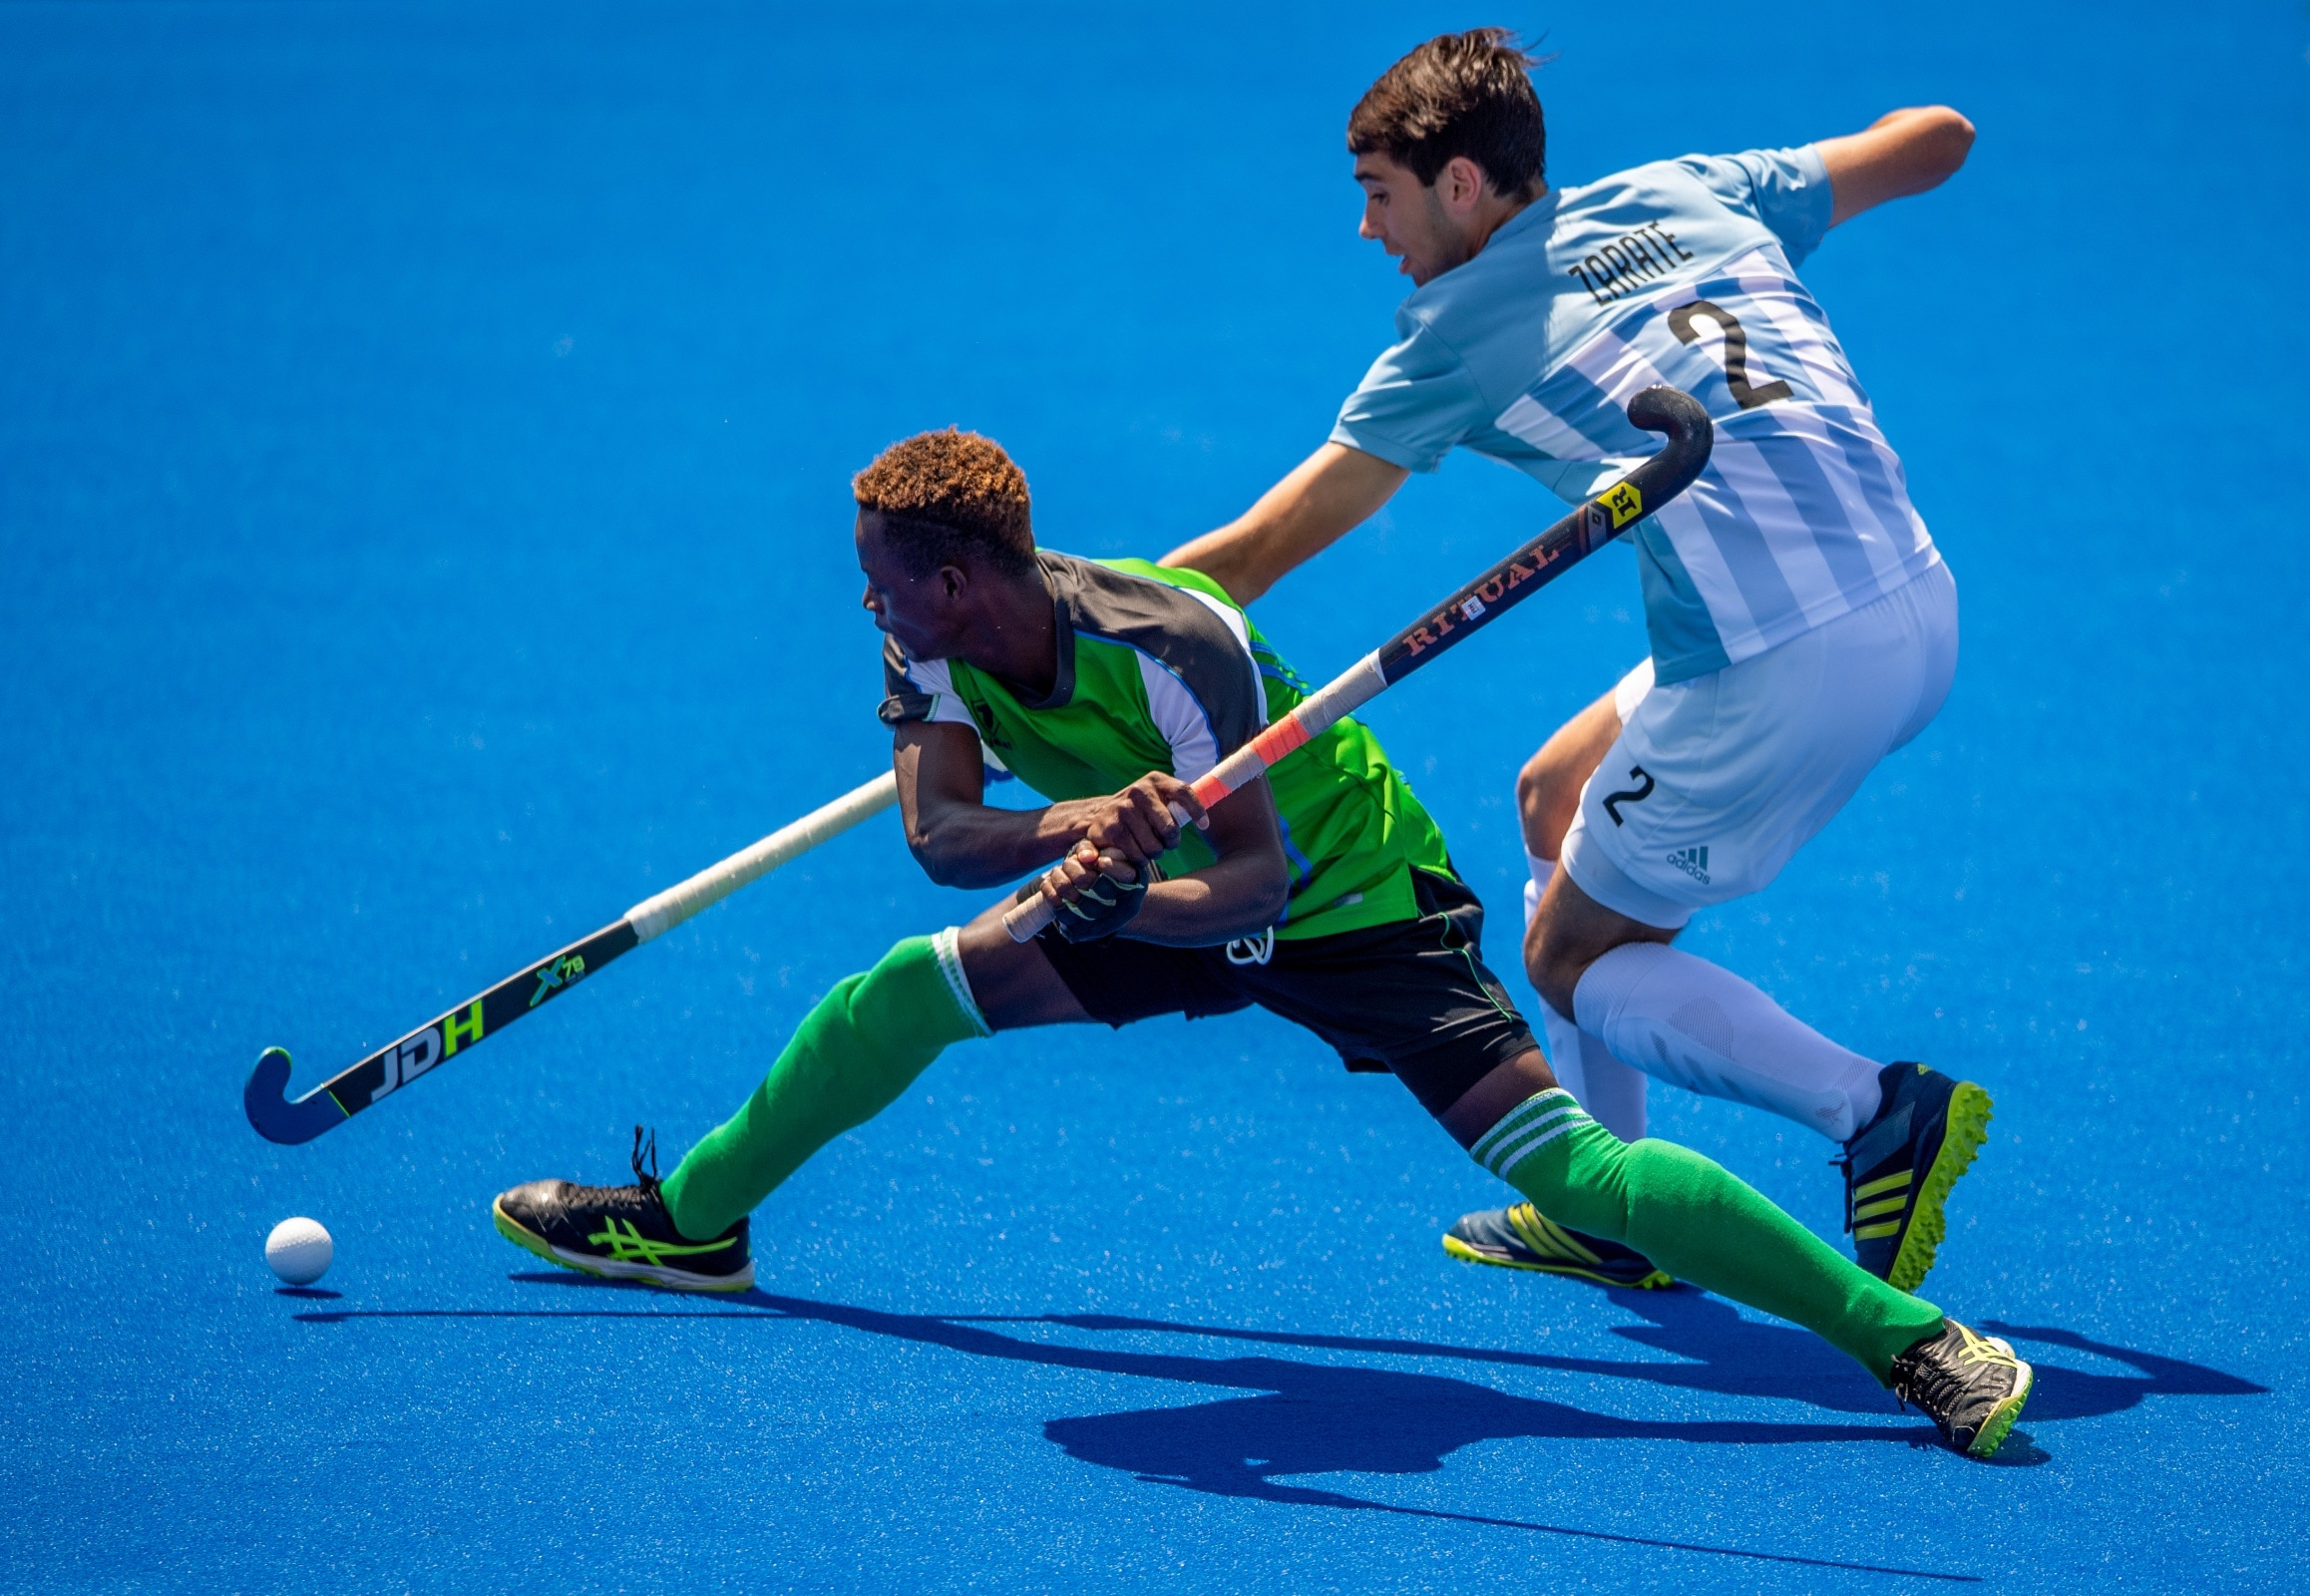 Buenos Aires 2018 - Hockey5s - Men's Tournament